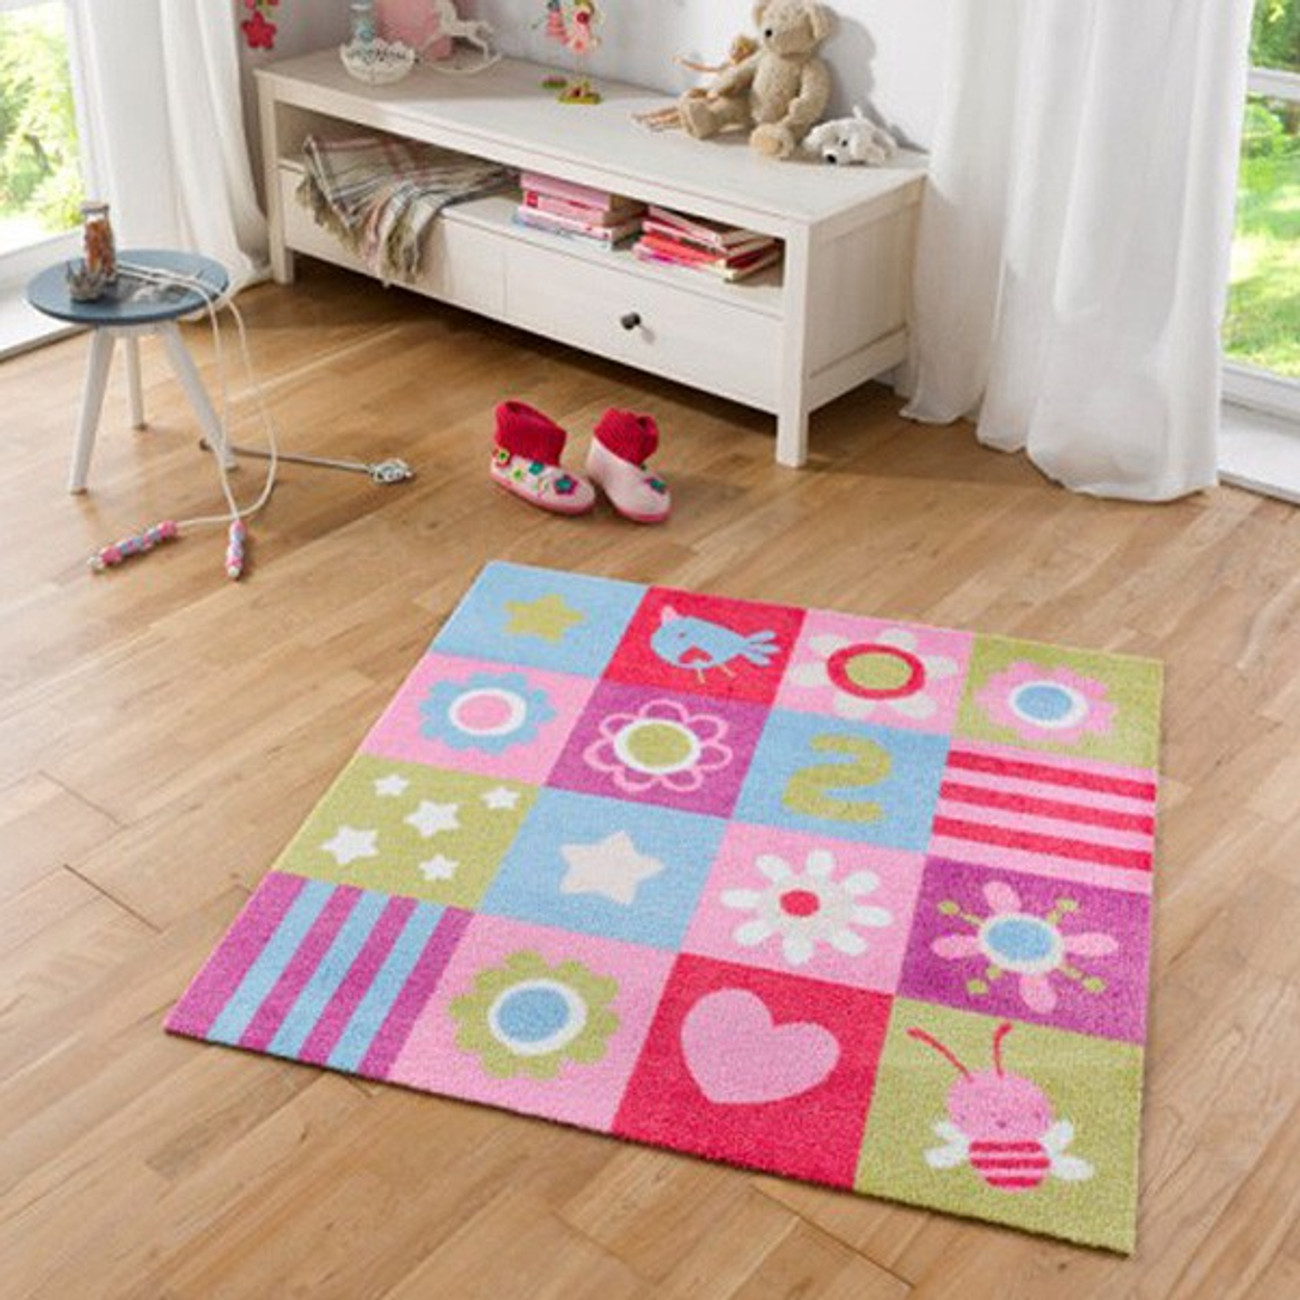 kurzflor kinderteppich softvelours flower patchwork 100x100 cm 4260425281583 ebay. Black Bedroom Furniture Sets. Home Design Ideas